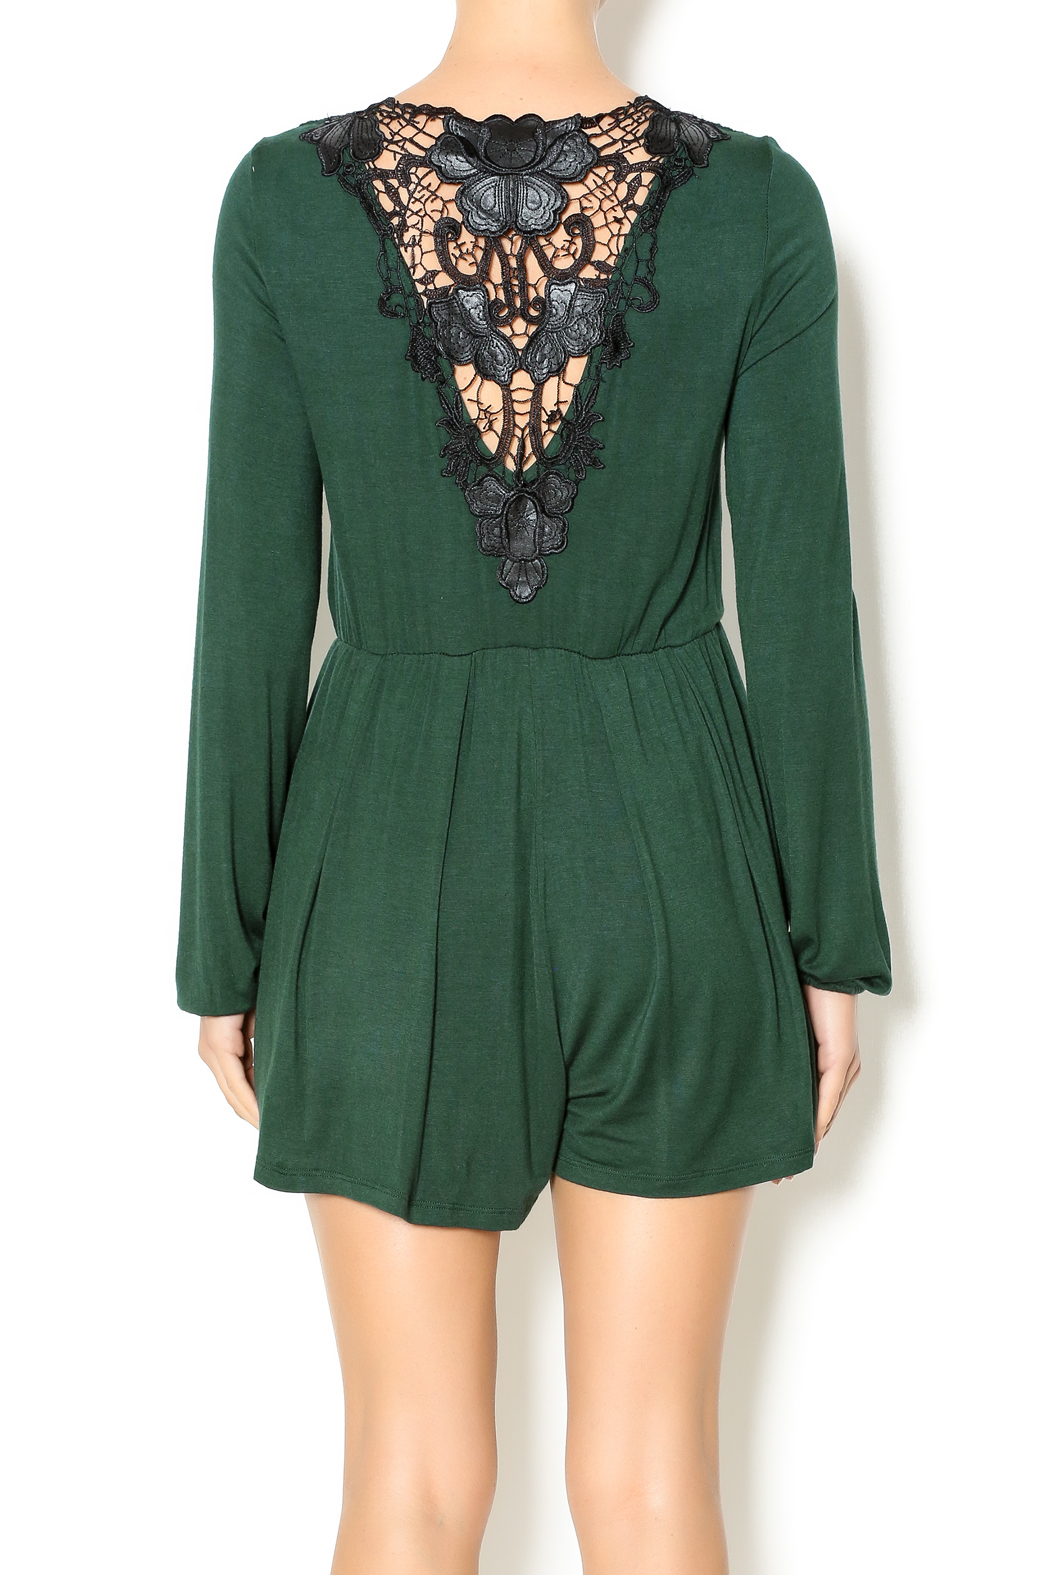 Double Zero Hunter Green Romper - Back Cropped Image